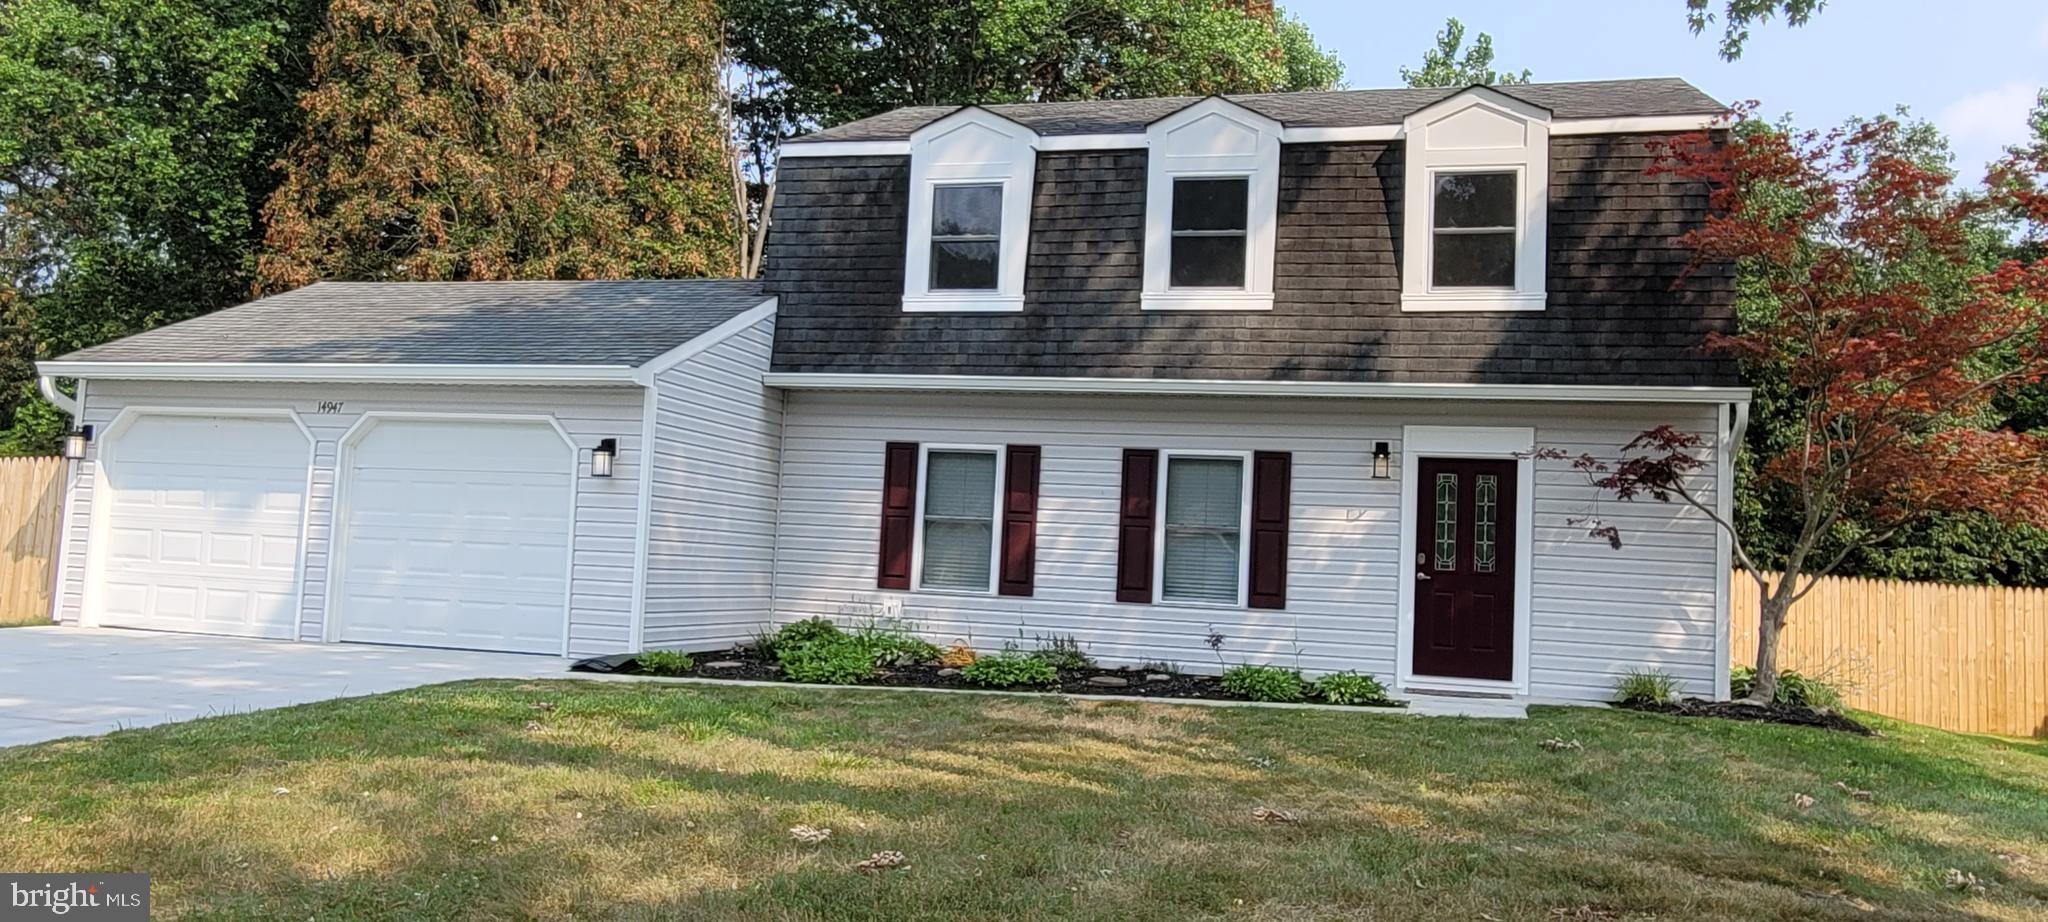 Property will be available to show on Monday July 26, 2021.  Interior photos to be loaded no later t